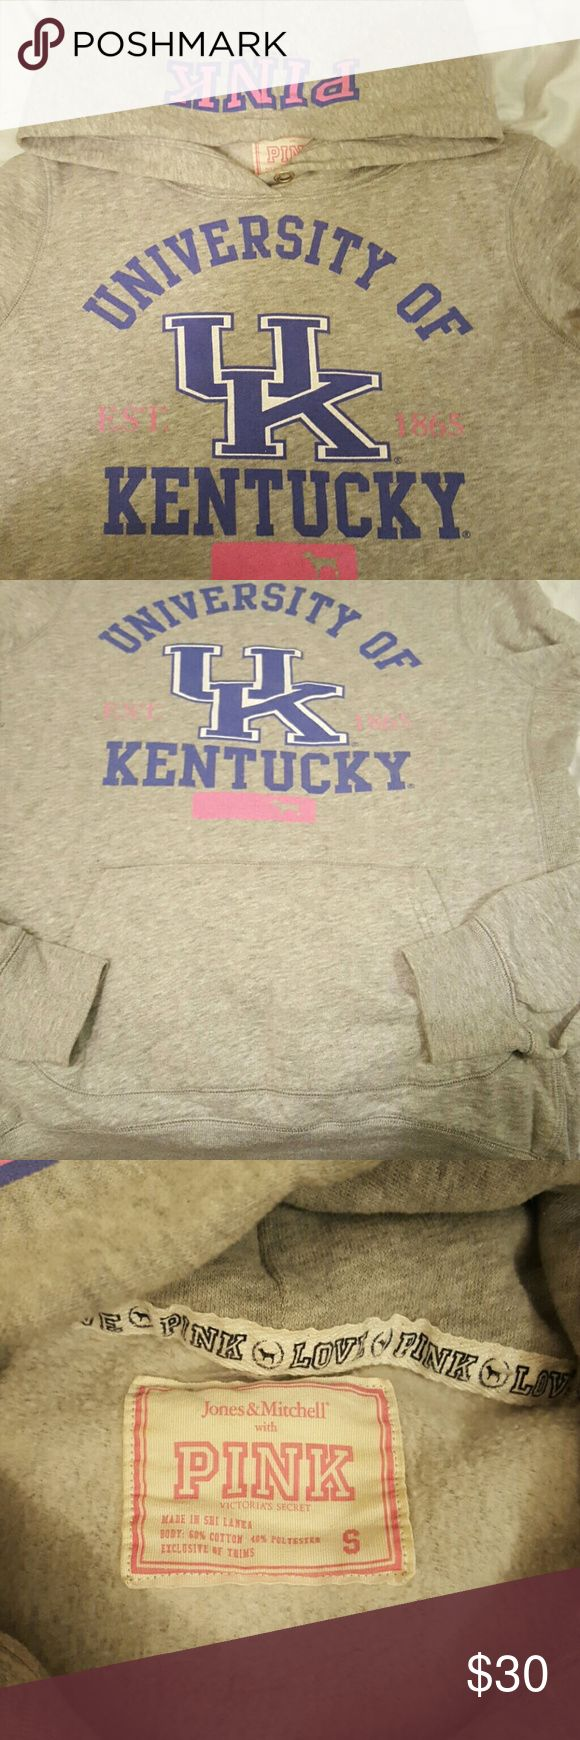 PINK University of Kentucky UK Sweatshirt Are you ready for March Madness?!? Victoria's Secret PINK UK Wildcats sweatshirt that is ready to be worn!! No stains, holes, etc. No string to tighten the hood. Says PINK on the hood of the sweatshirt. PINK Victoria's Secret Tops Sweatshirts & Hoodies